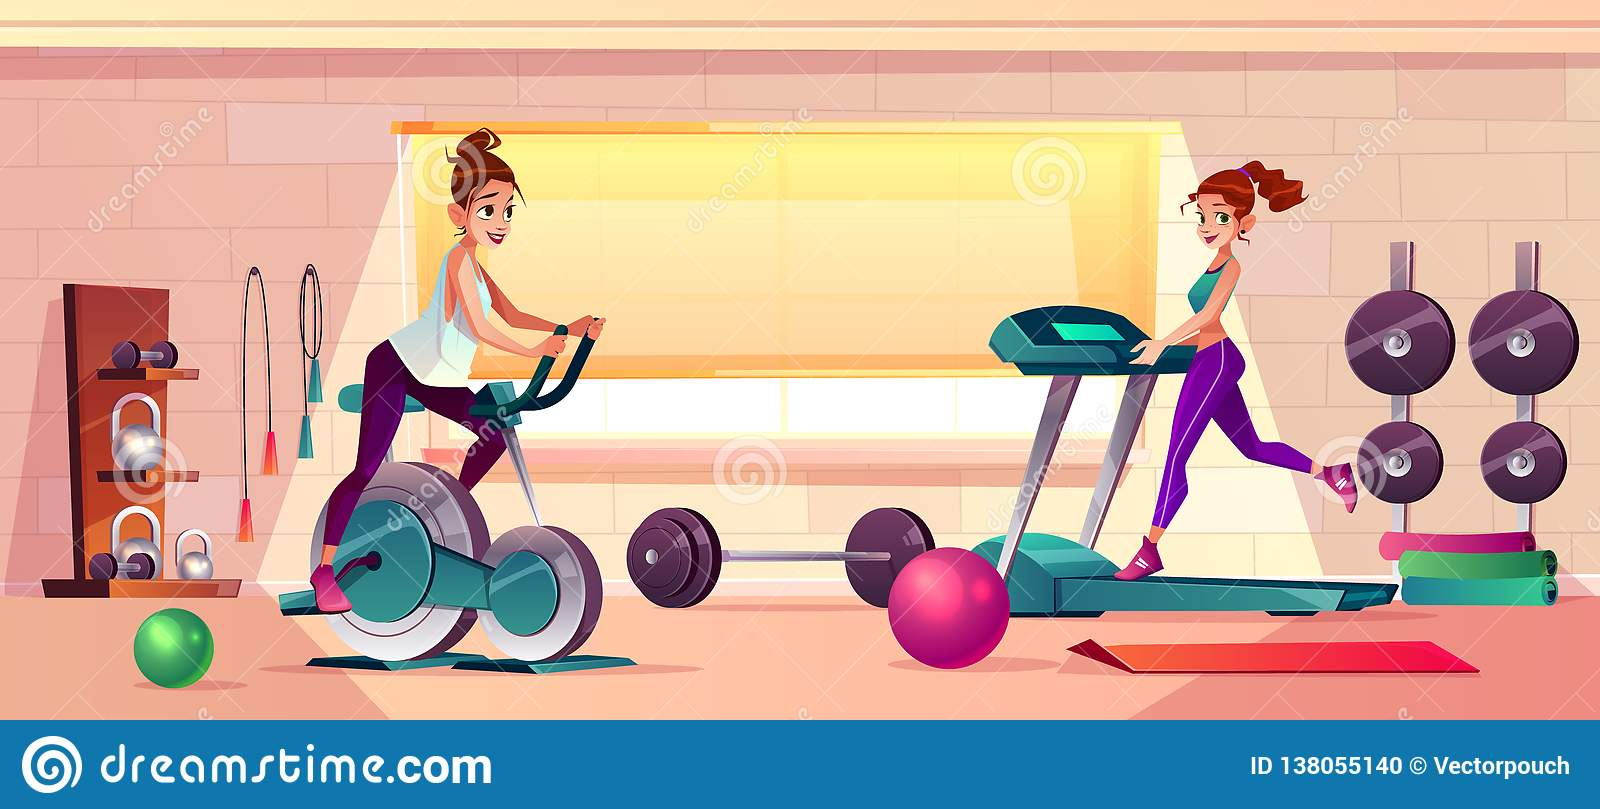 Vector gym background with treadmill, bike training